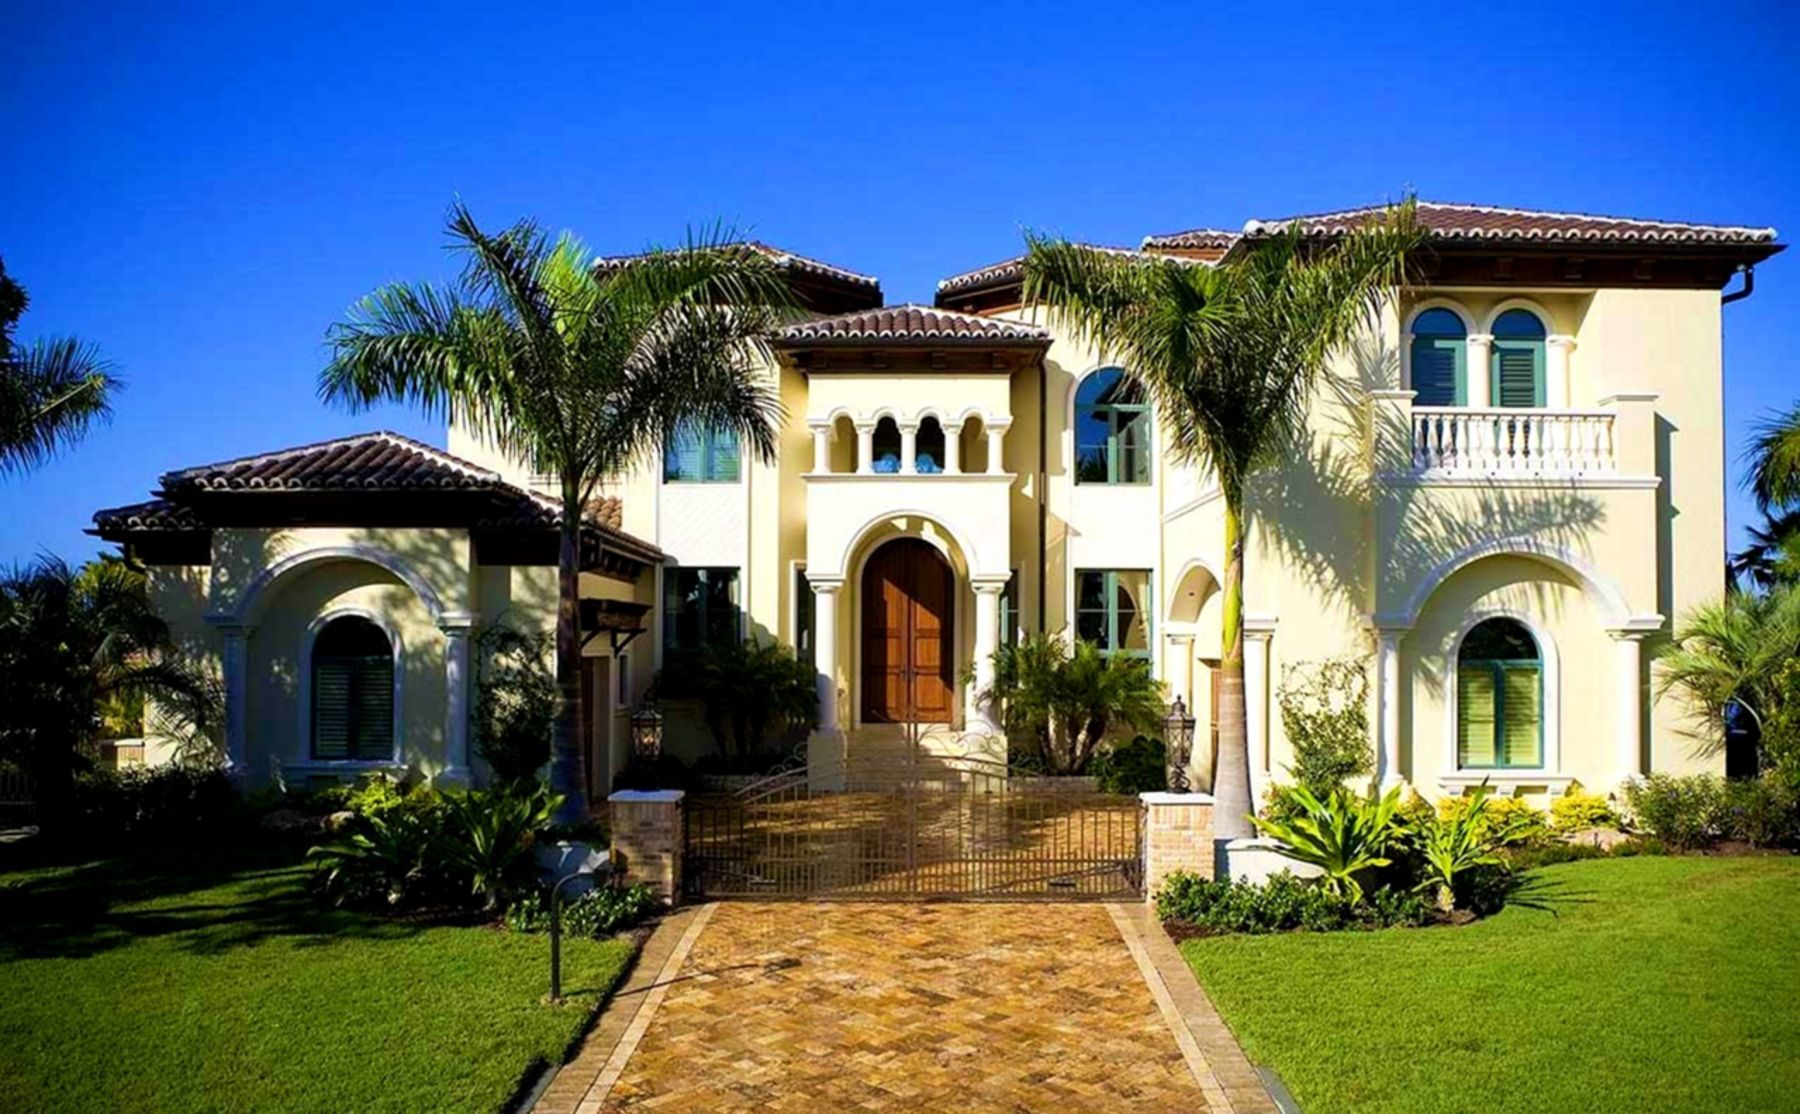 25 Top And Amazing House Styles That Will Inspire You In 2020 Mediterranean Style House Plans Mediterranean Revival Architecture